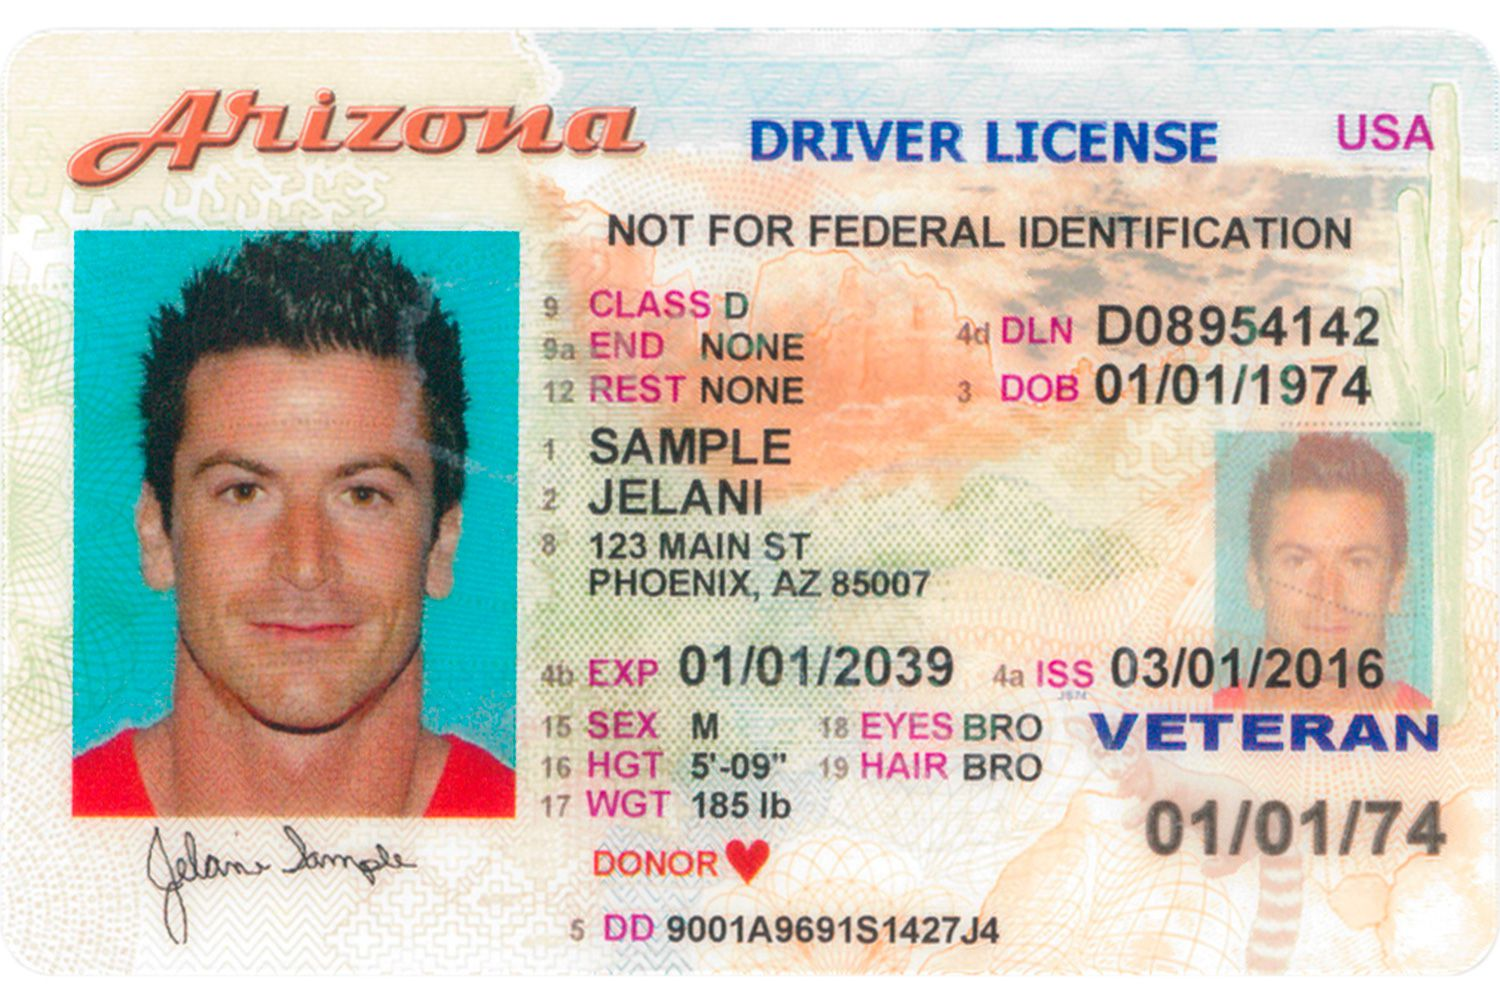 An Does Look Like What Driver's Arizona License